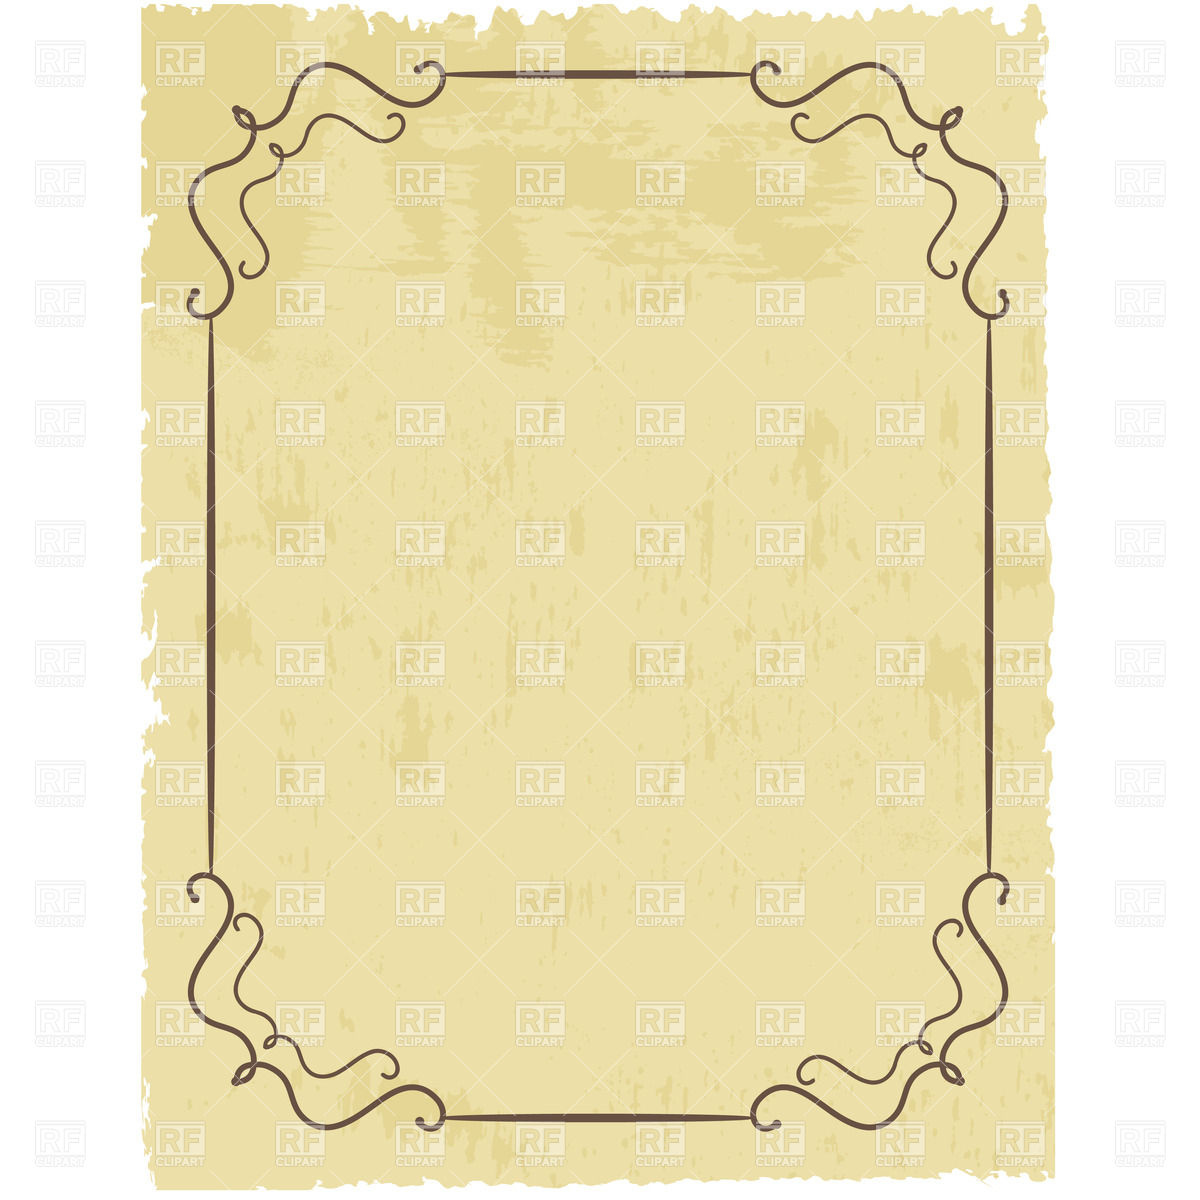 1200x1200 Vintage Simple Frame On Worn Sheet Of Lacerated Paper Vector Image